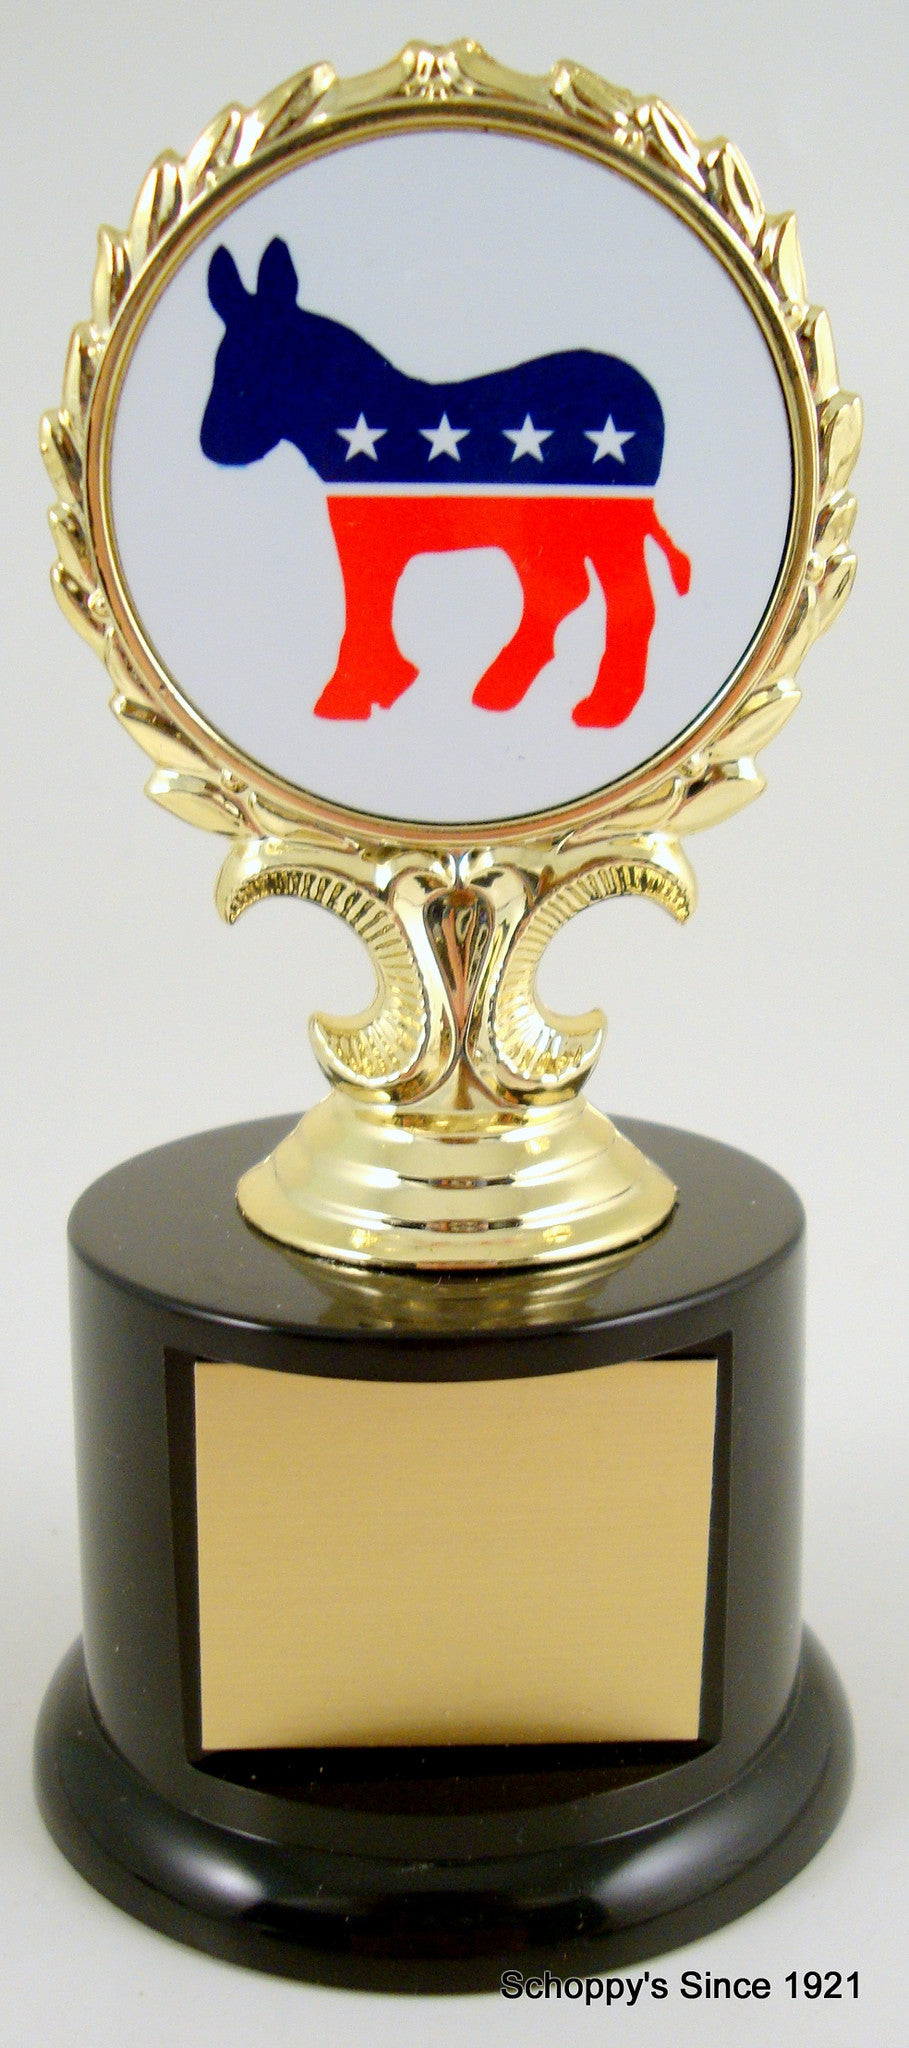 Political Animal Logo Trophy On Black Round Base-Trophies-Schoppy's Since 1921